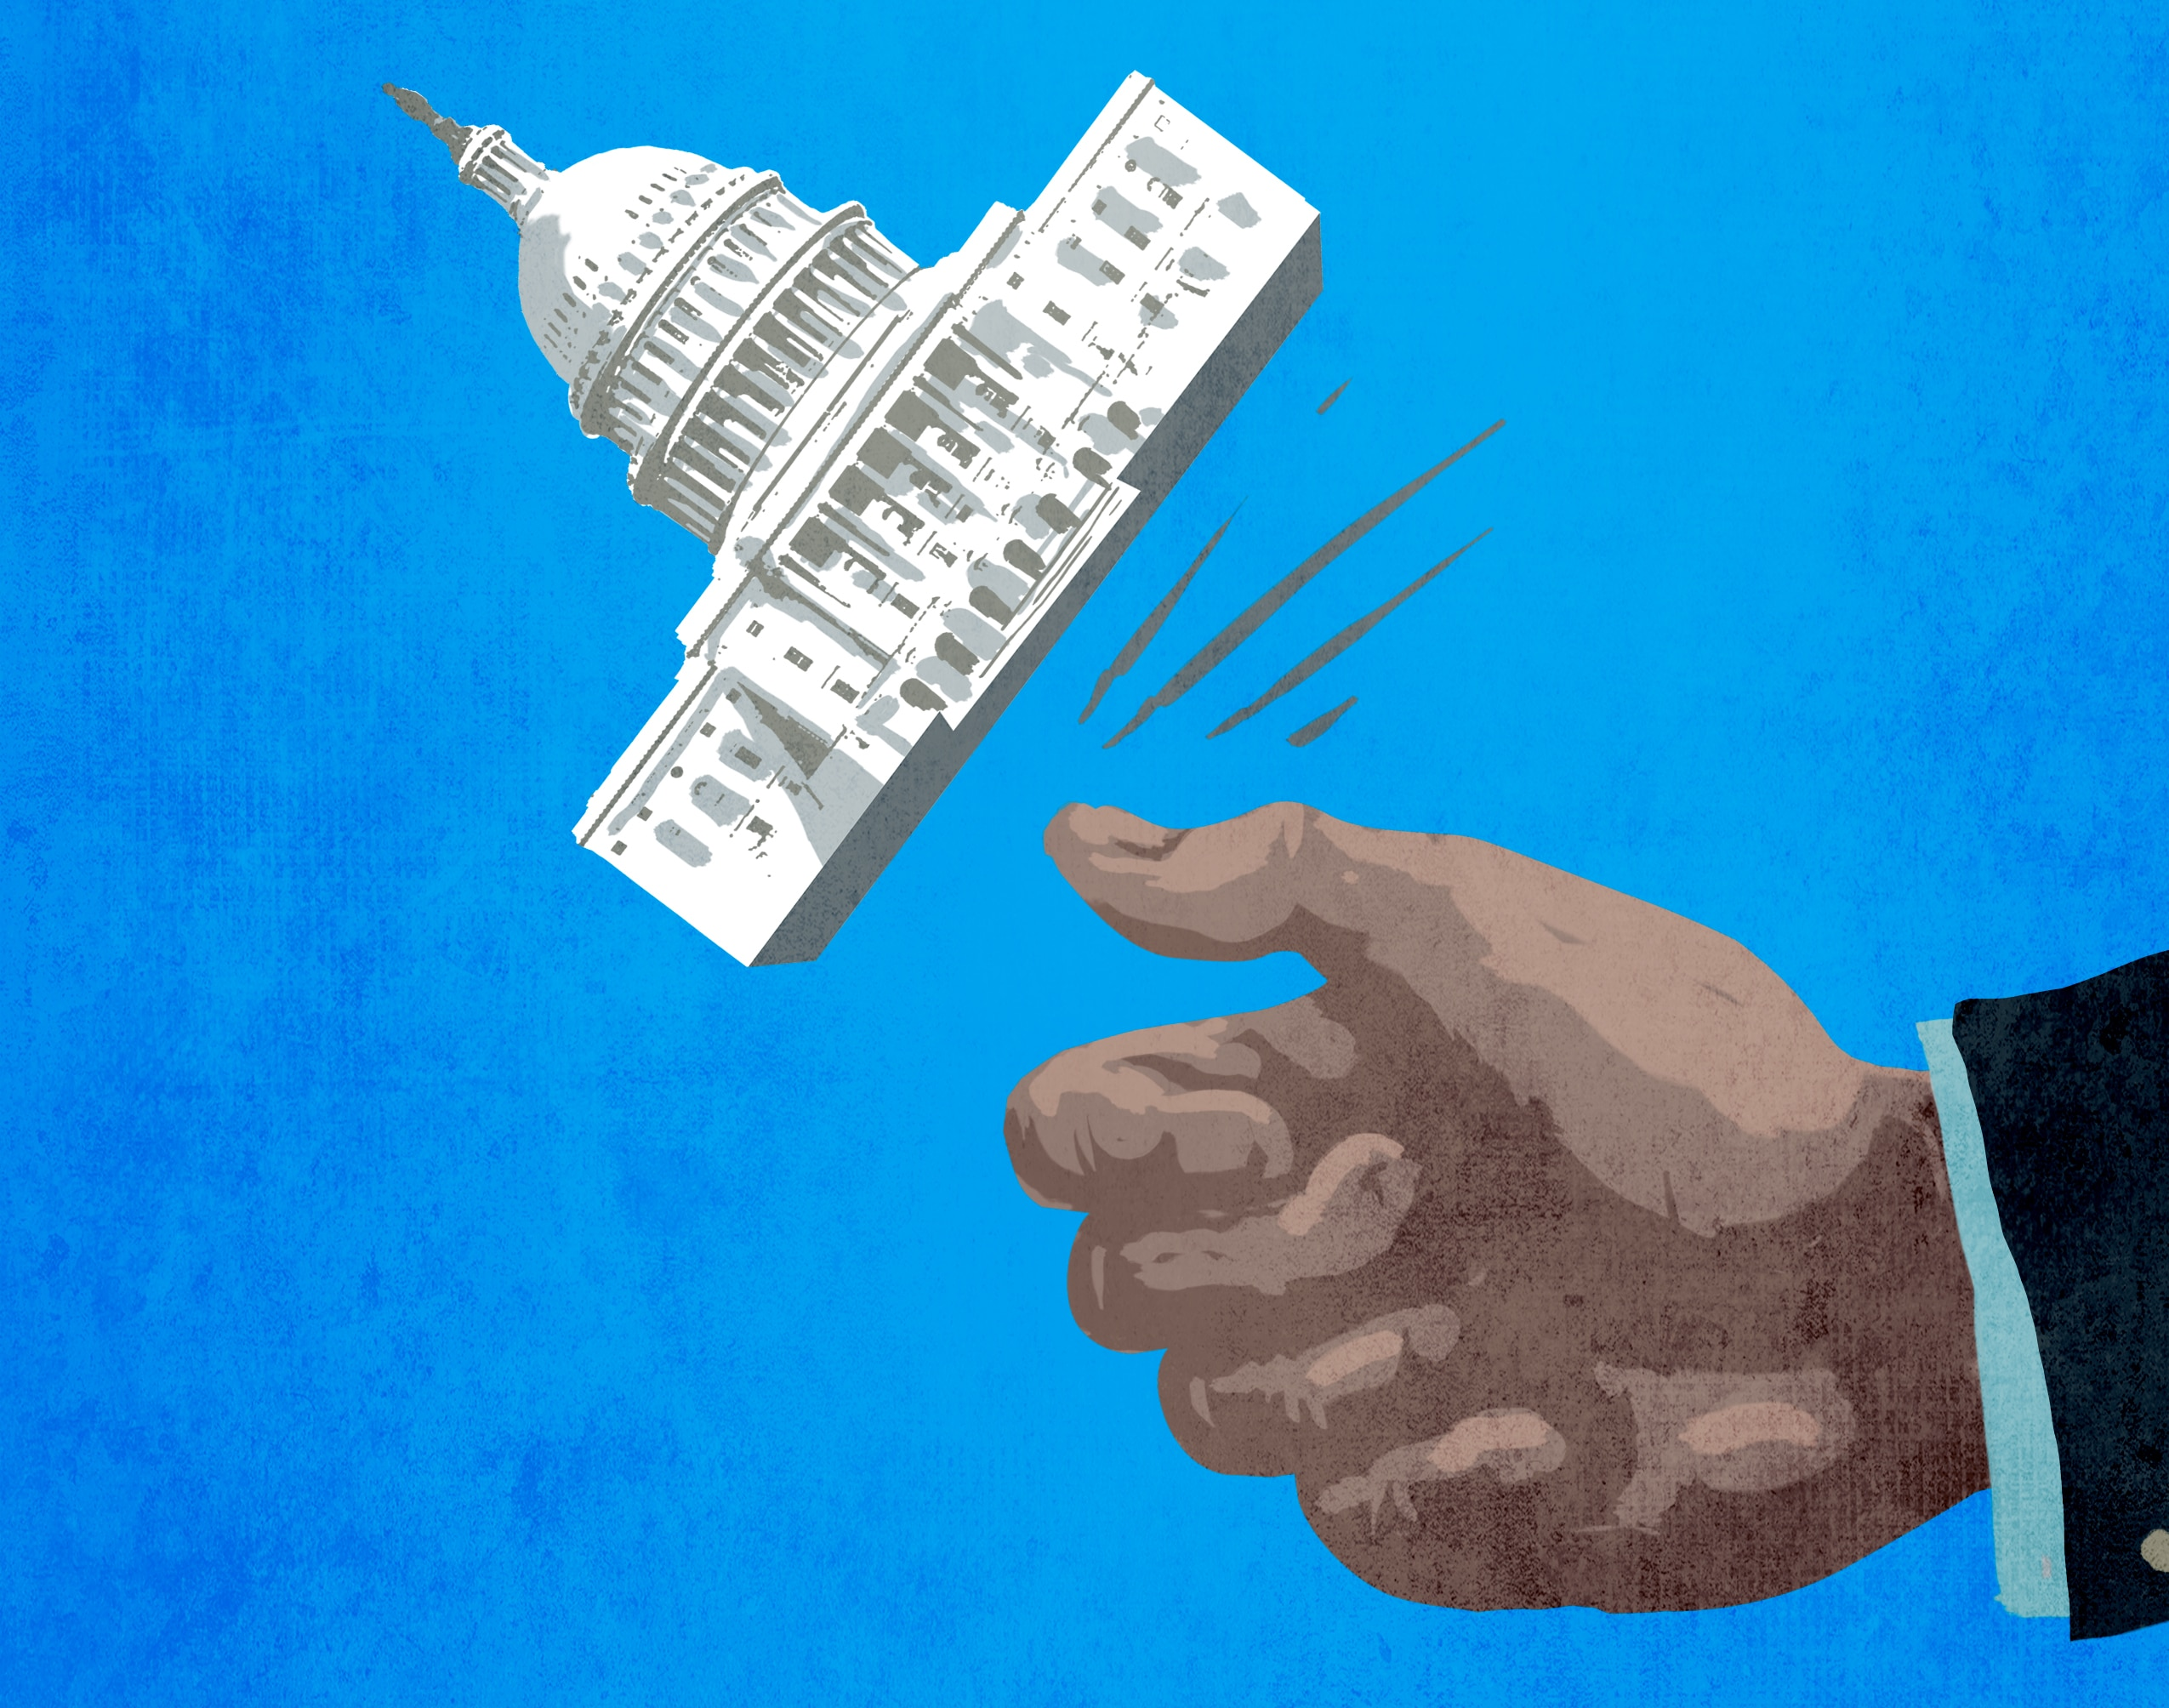 Illustration of large hand flipping U.S. Capitol building like coin (State Dept./D.Thompson)